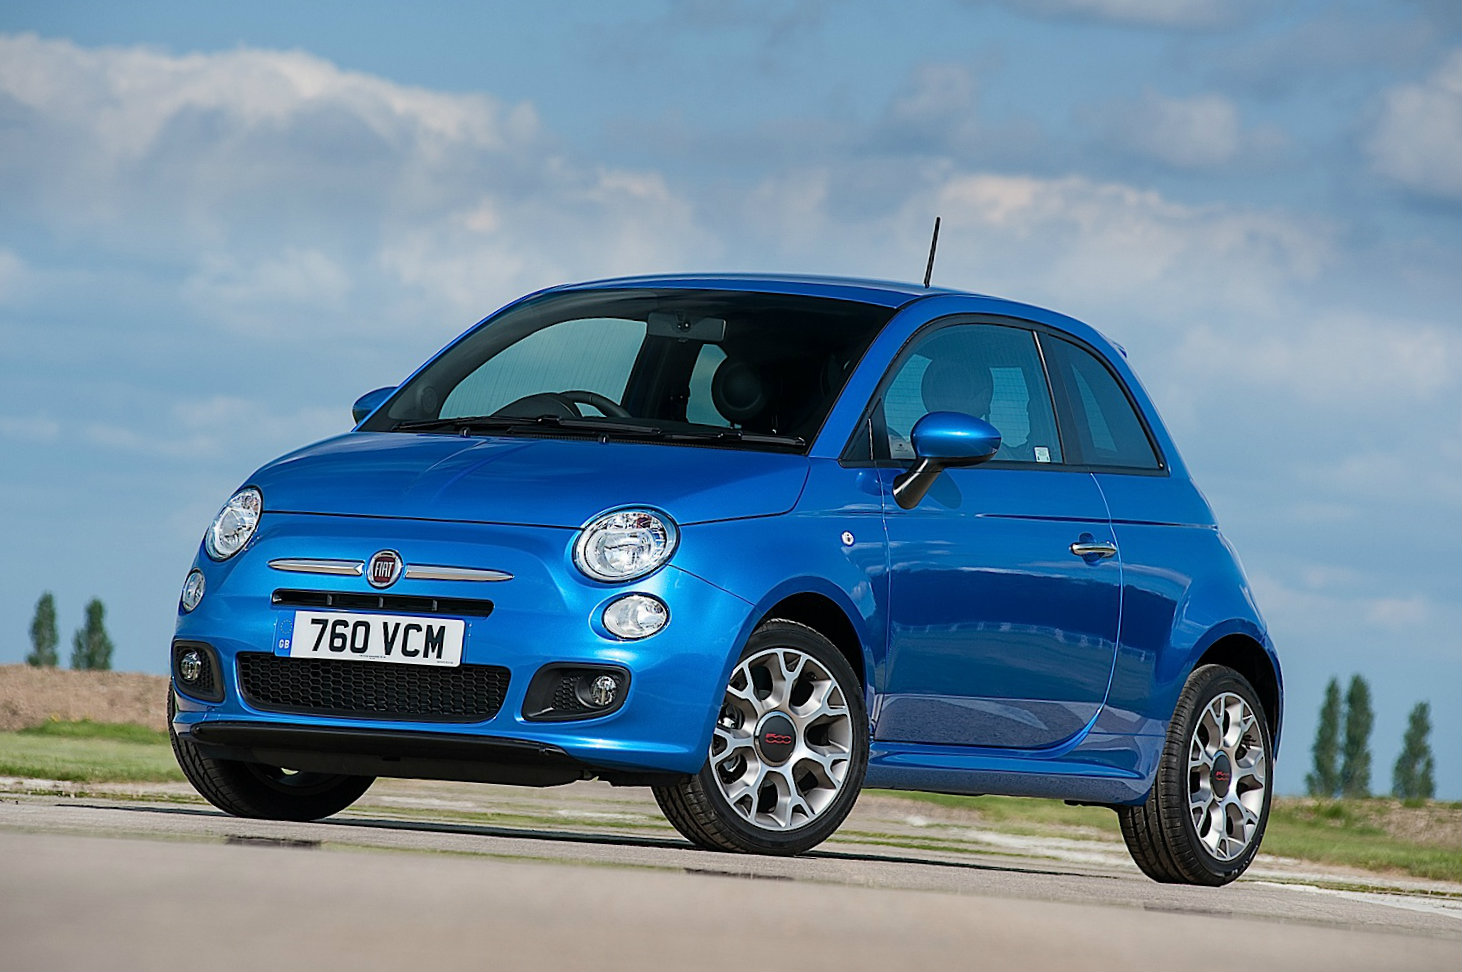 2014 fiat 500 uk pricing announced autoevolution. Black Bedroom Furniture Sets. Home Design Ideas